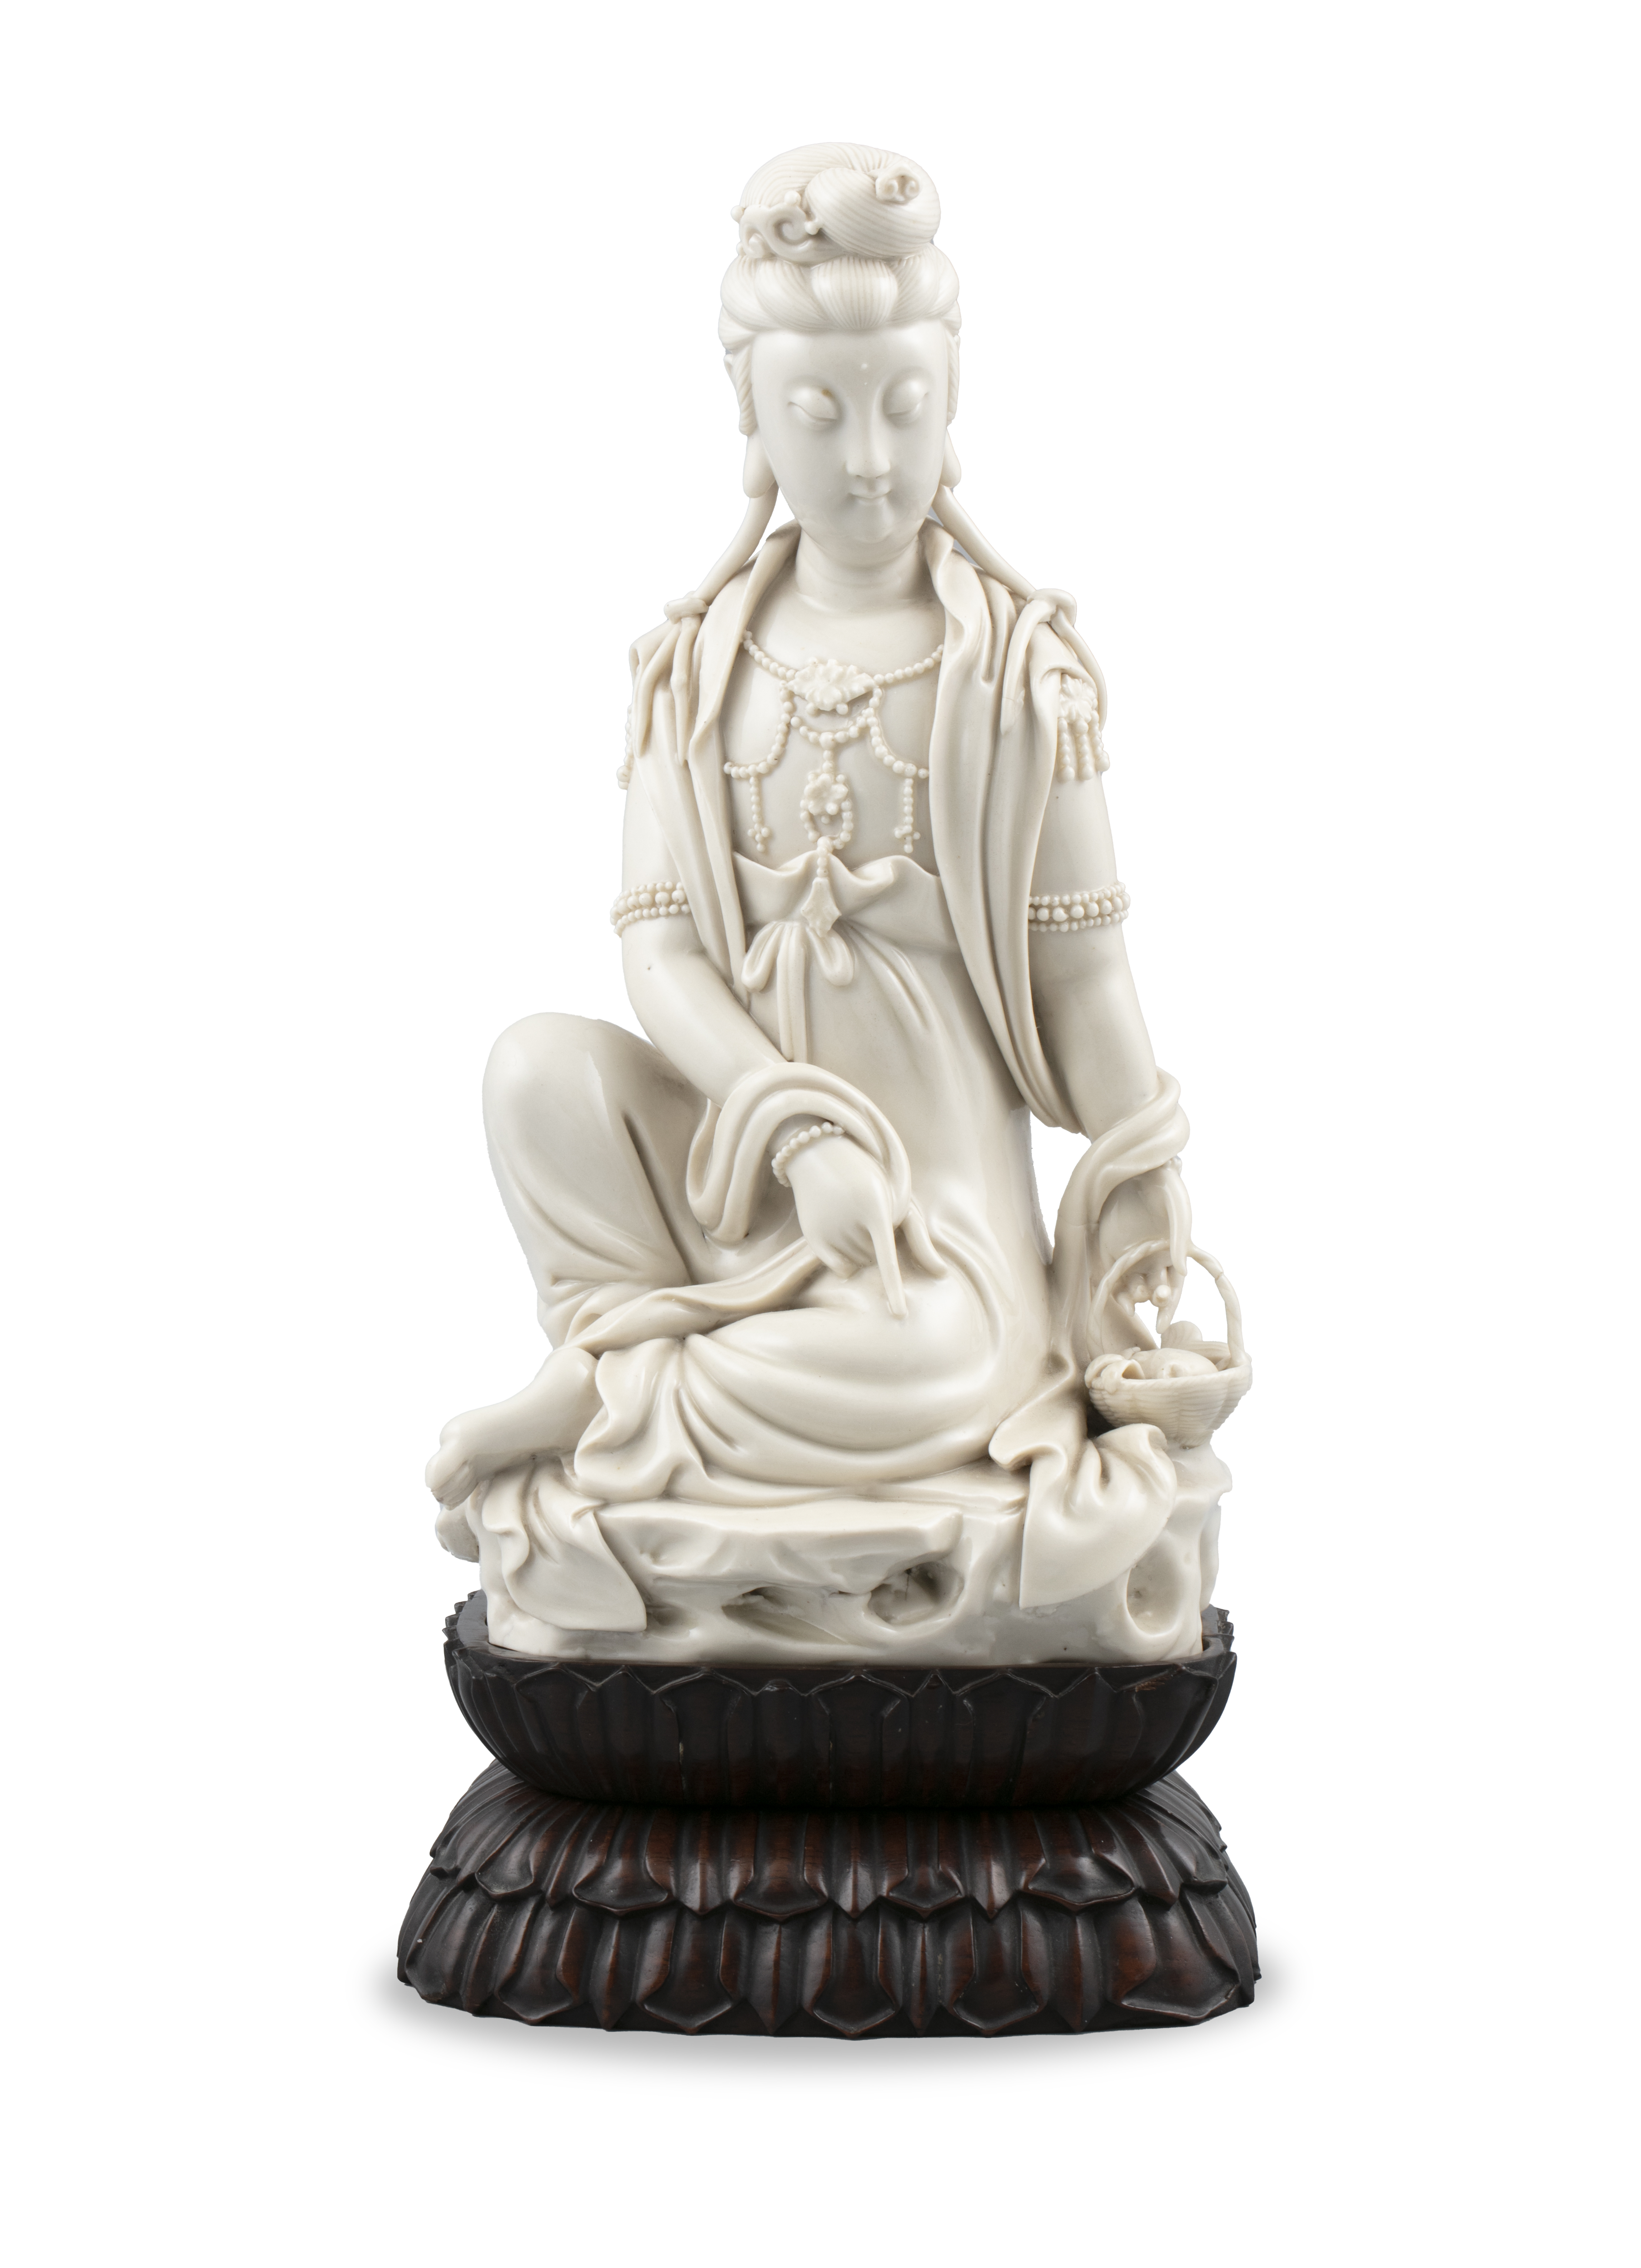 A LARGE DEHUA FIGURE OF A SEATED GUANYIN IMPRESSED WITH A HE CHAOZONG 何朝宗 CALABASH SHAPED SEAL - Image 48 of 48